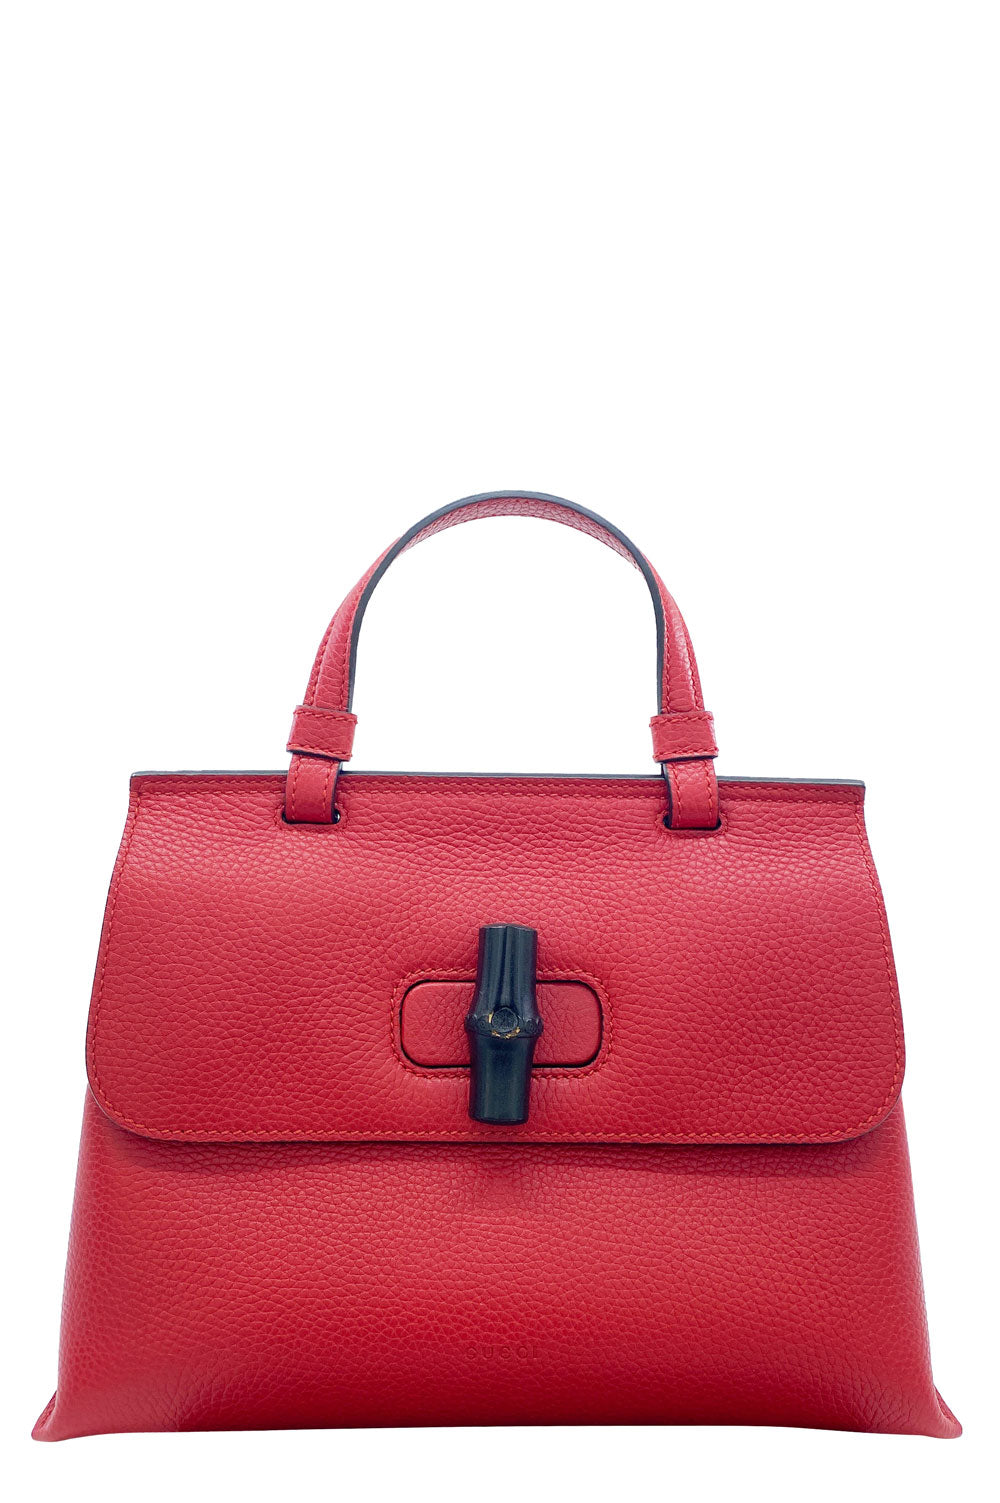 GUCCI Small Bamboo Daily Top Handle Bag Red Frontansicht